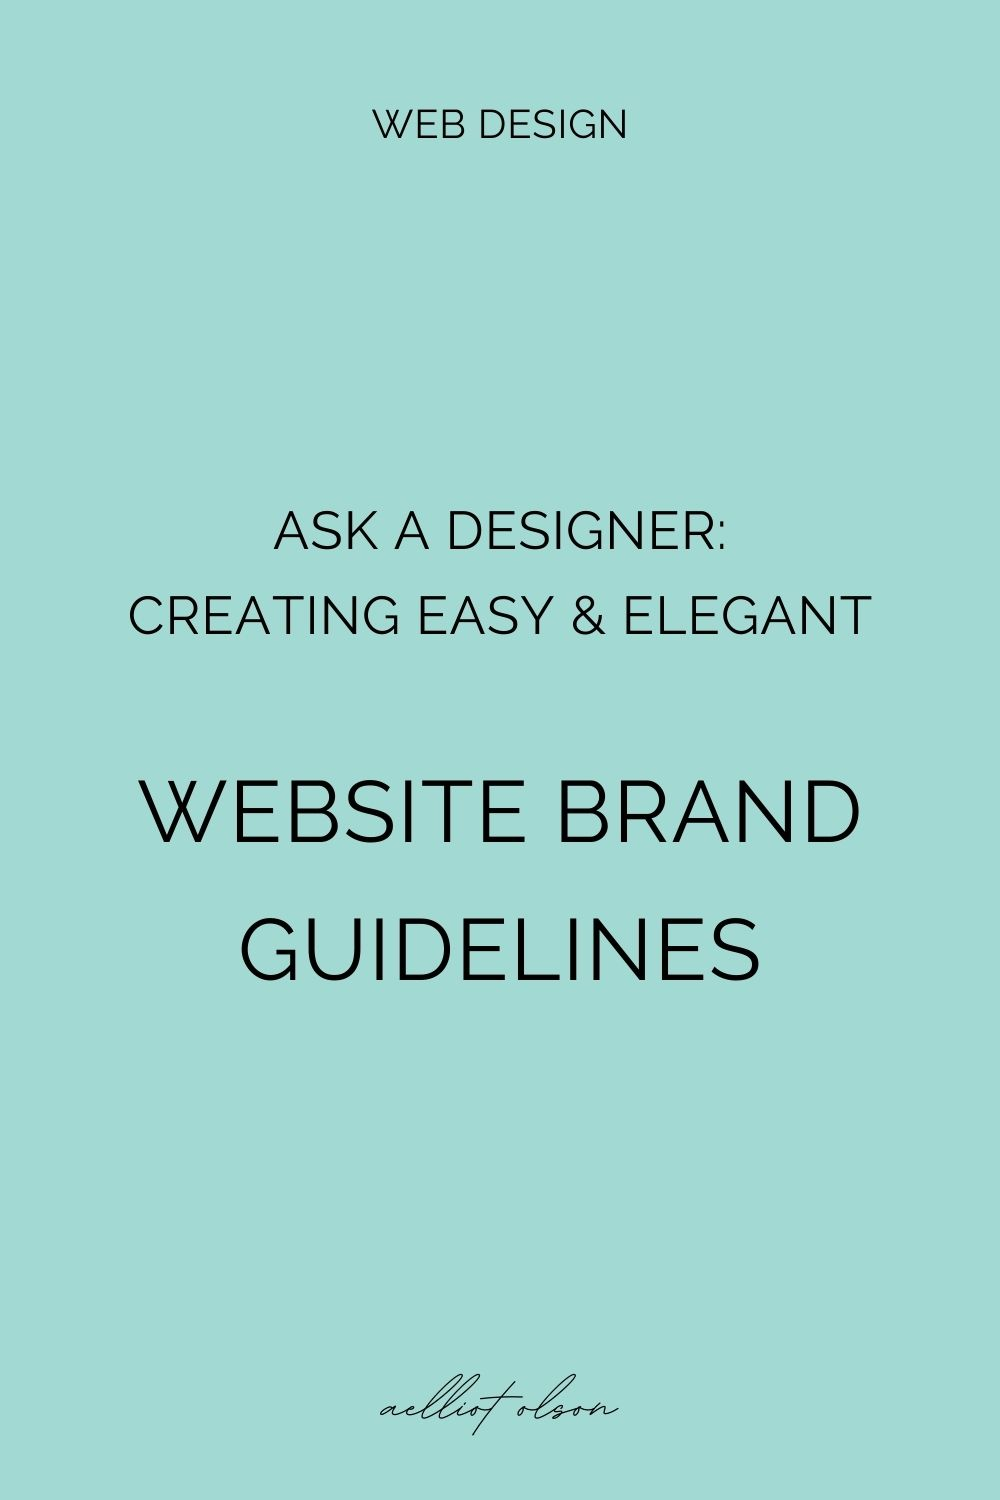 website brand guidelines template guide article